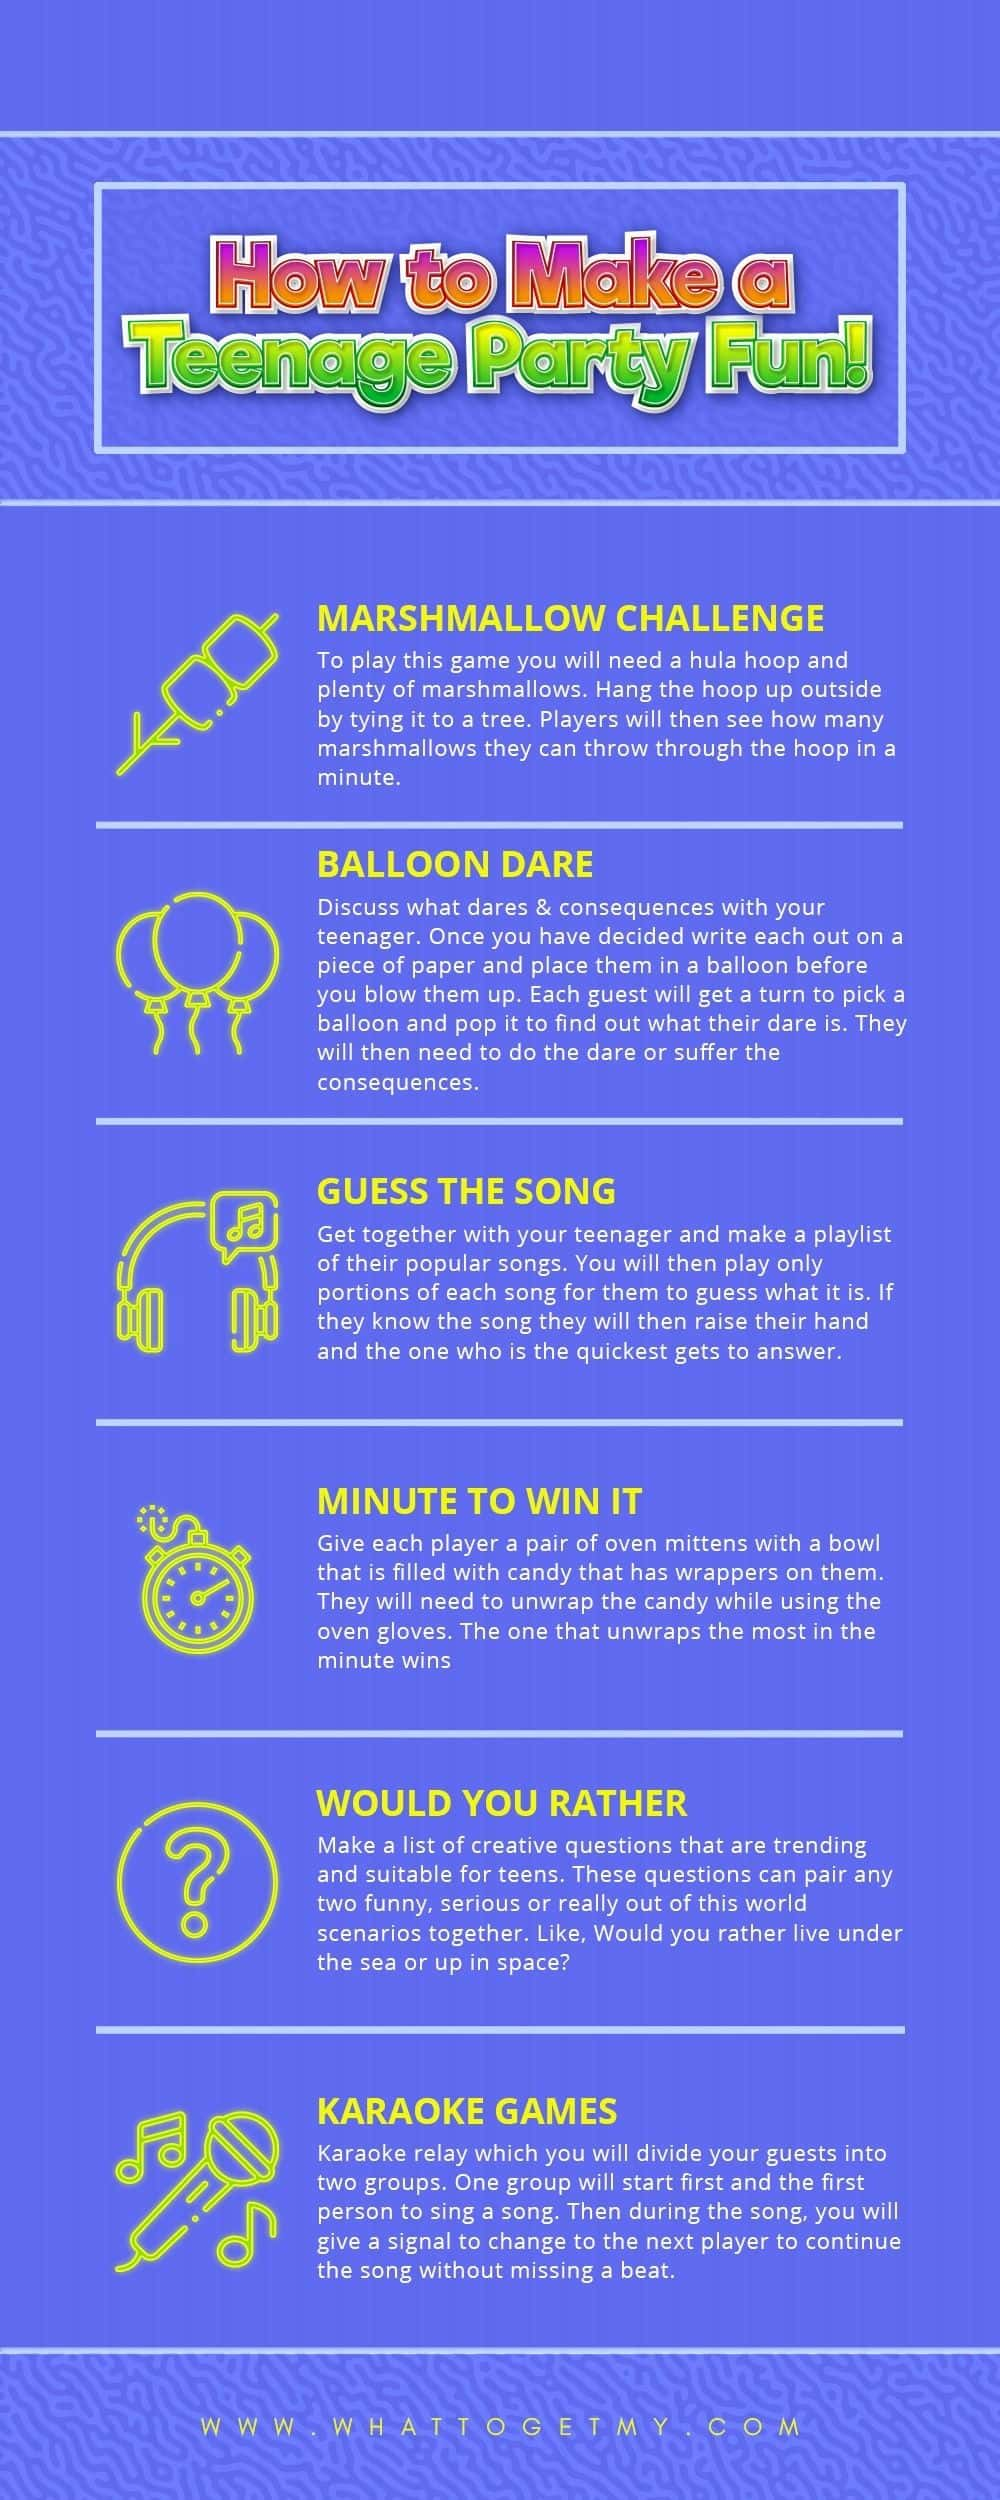 Infographic How to Make a Teenage Party Fun